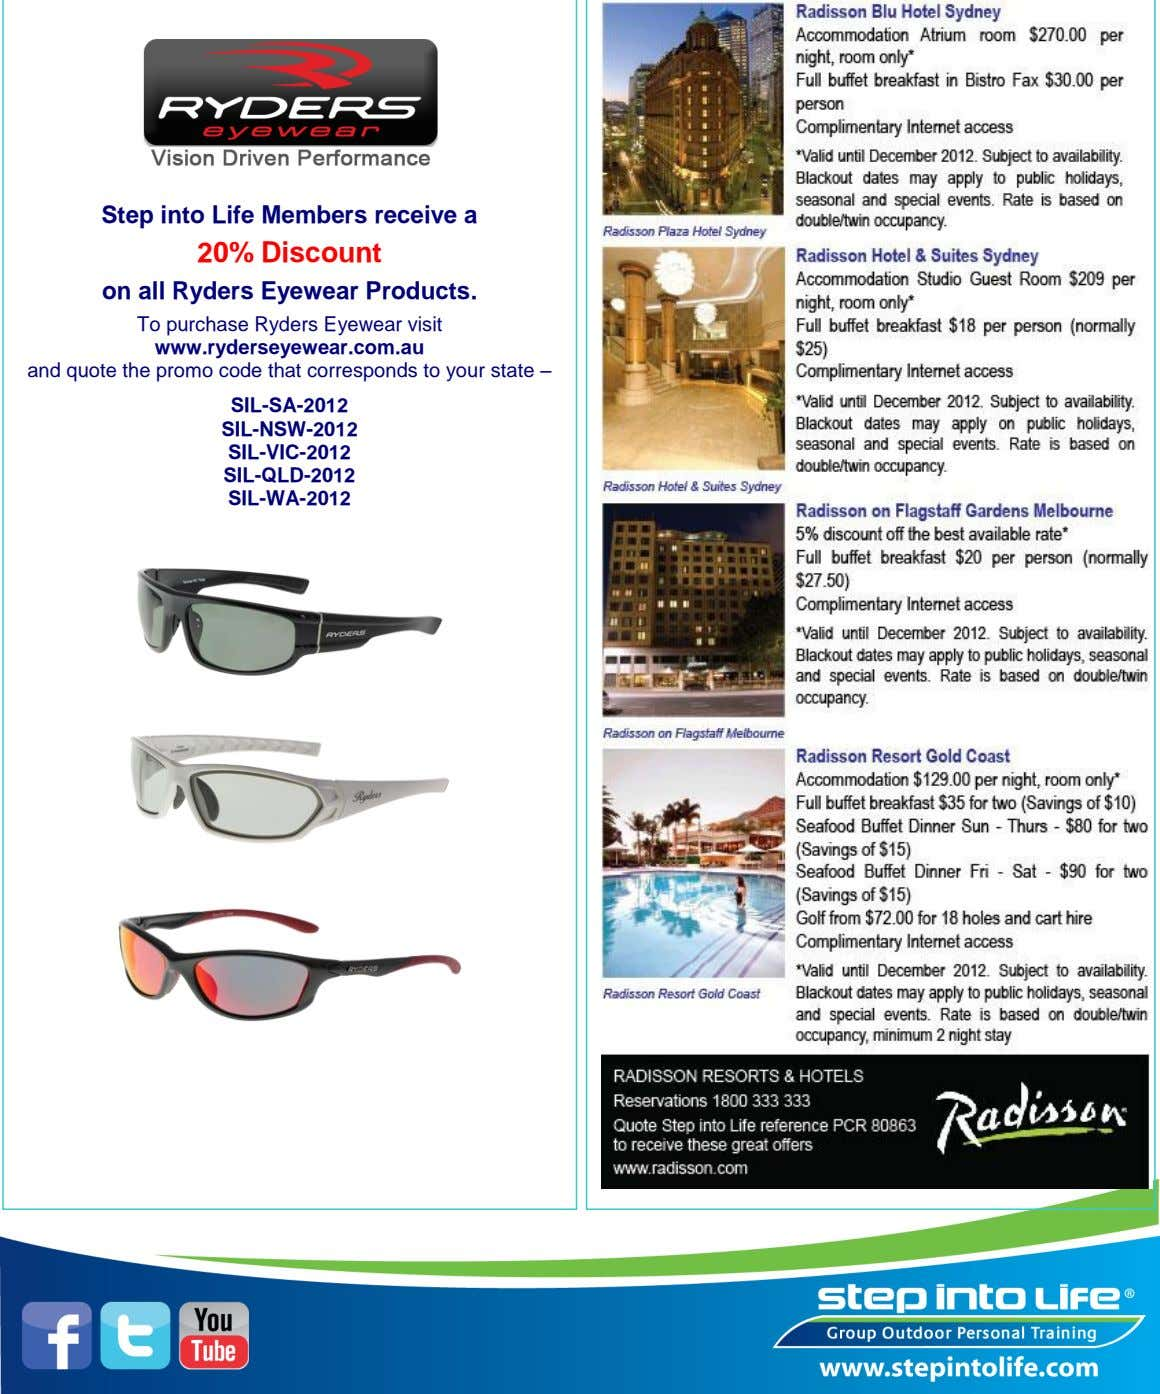 Step into Life Members receive a 20% Discount on all Ryders Eyewear Products. To purchase